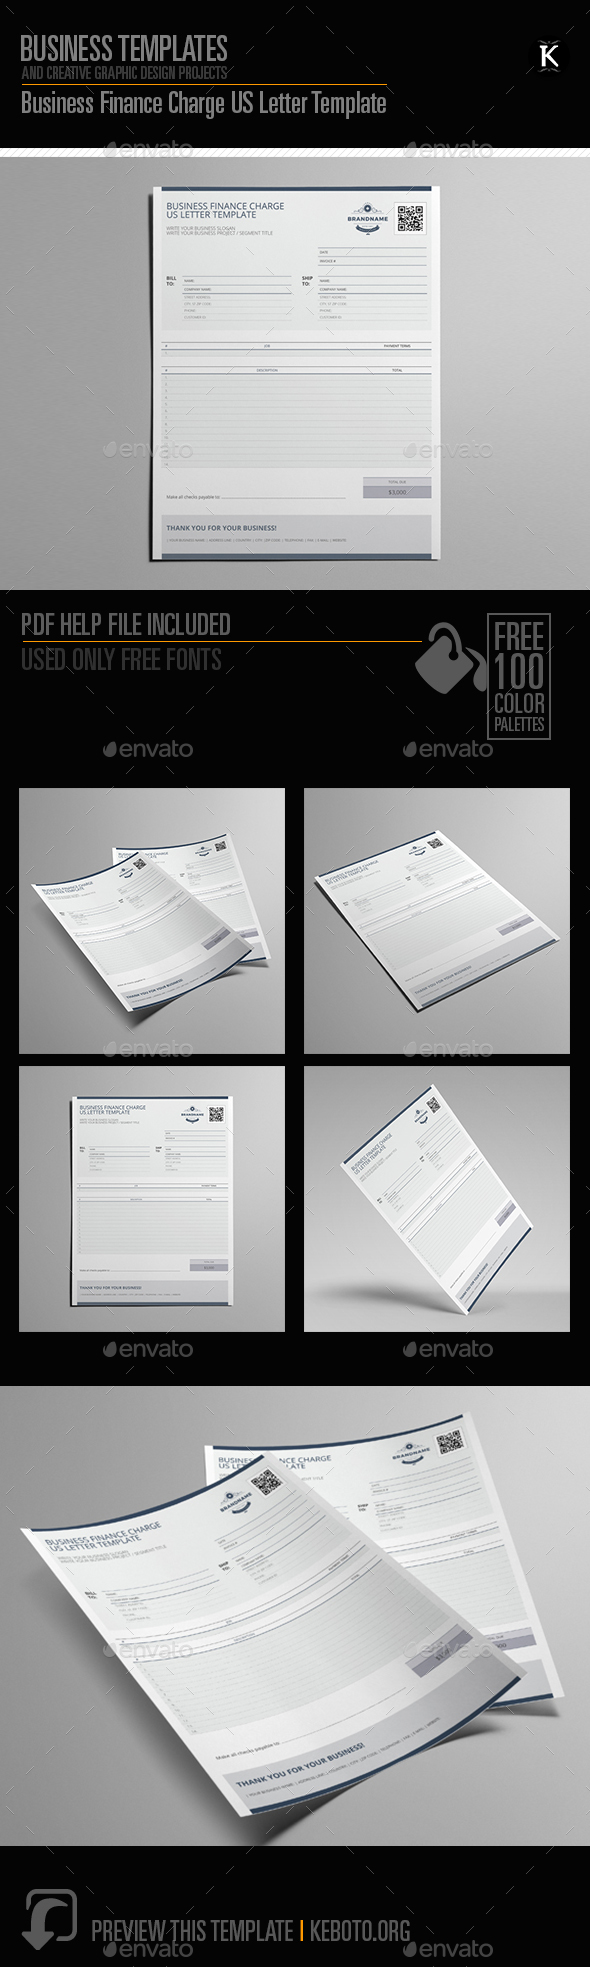 Business Finance Charge US Letter Template - Miscellaneous Print Templates